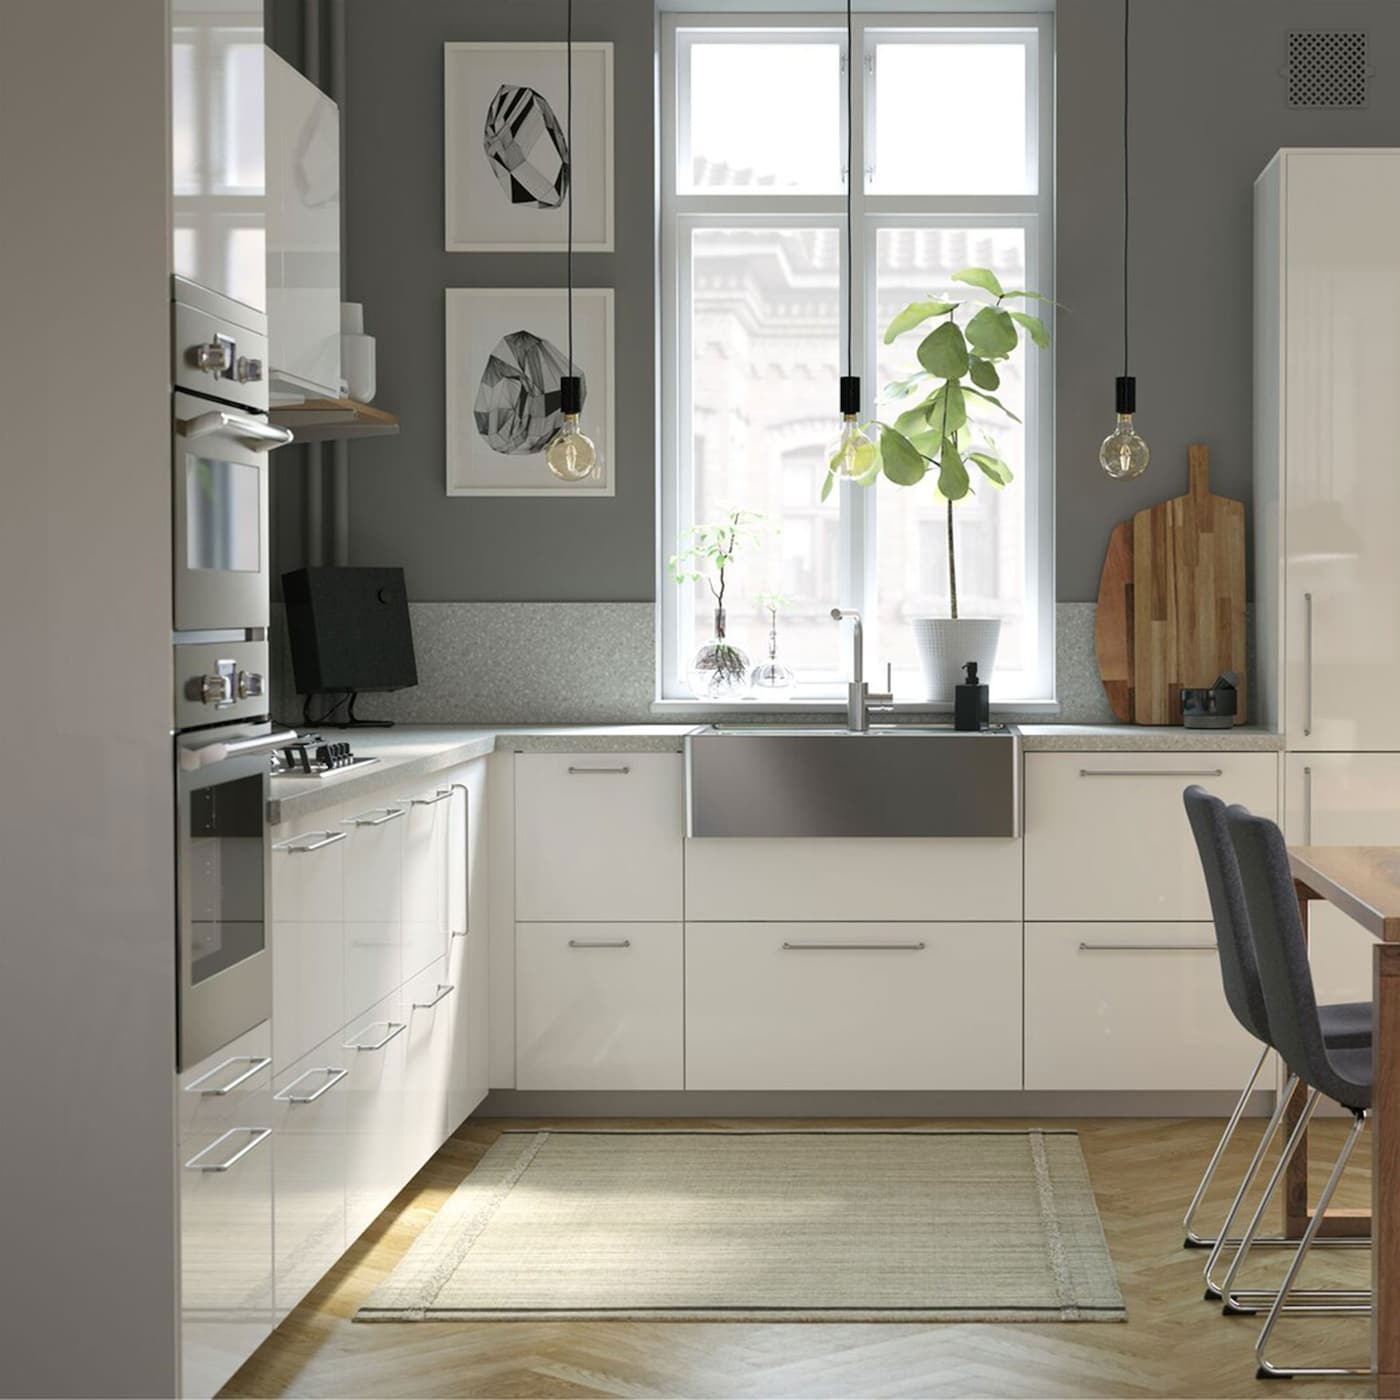 latest ikea small kitchen designs | A modern, bright, and airy kitchen with wooden detail - IKEA